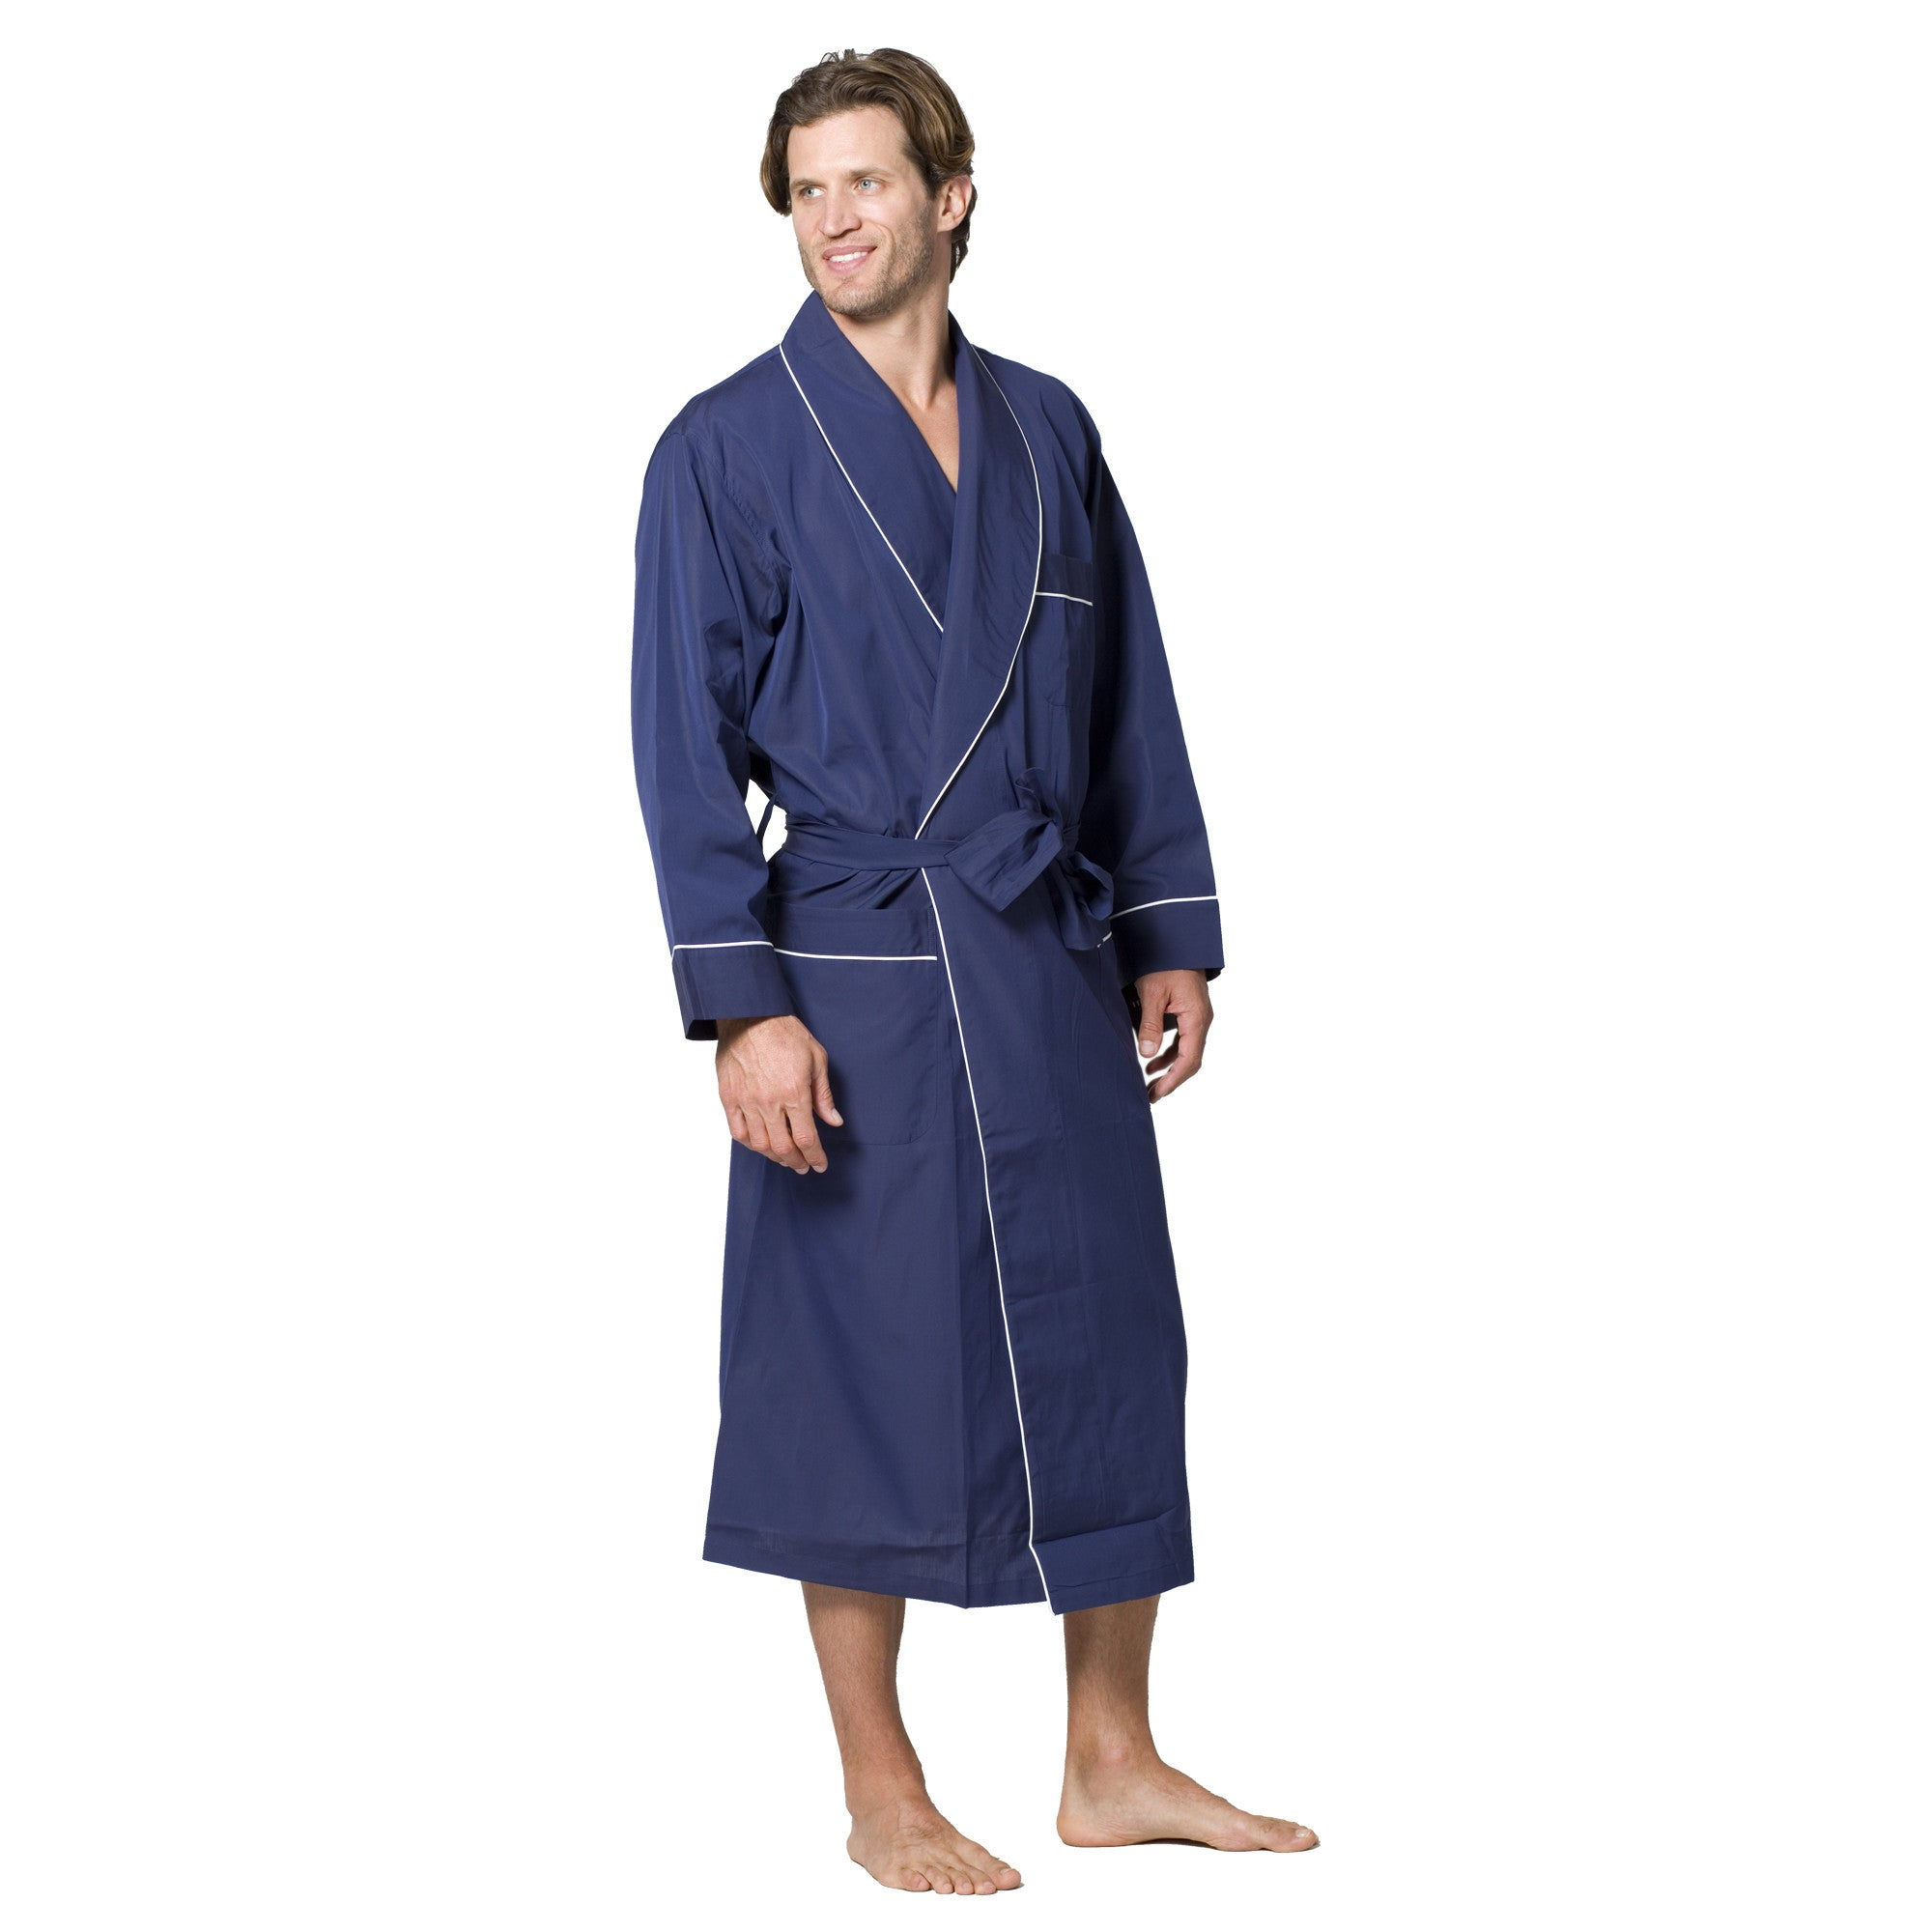 Men s Cotton Woven Robe - Shop Intimo – Intimo Inc 732934b54